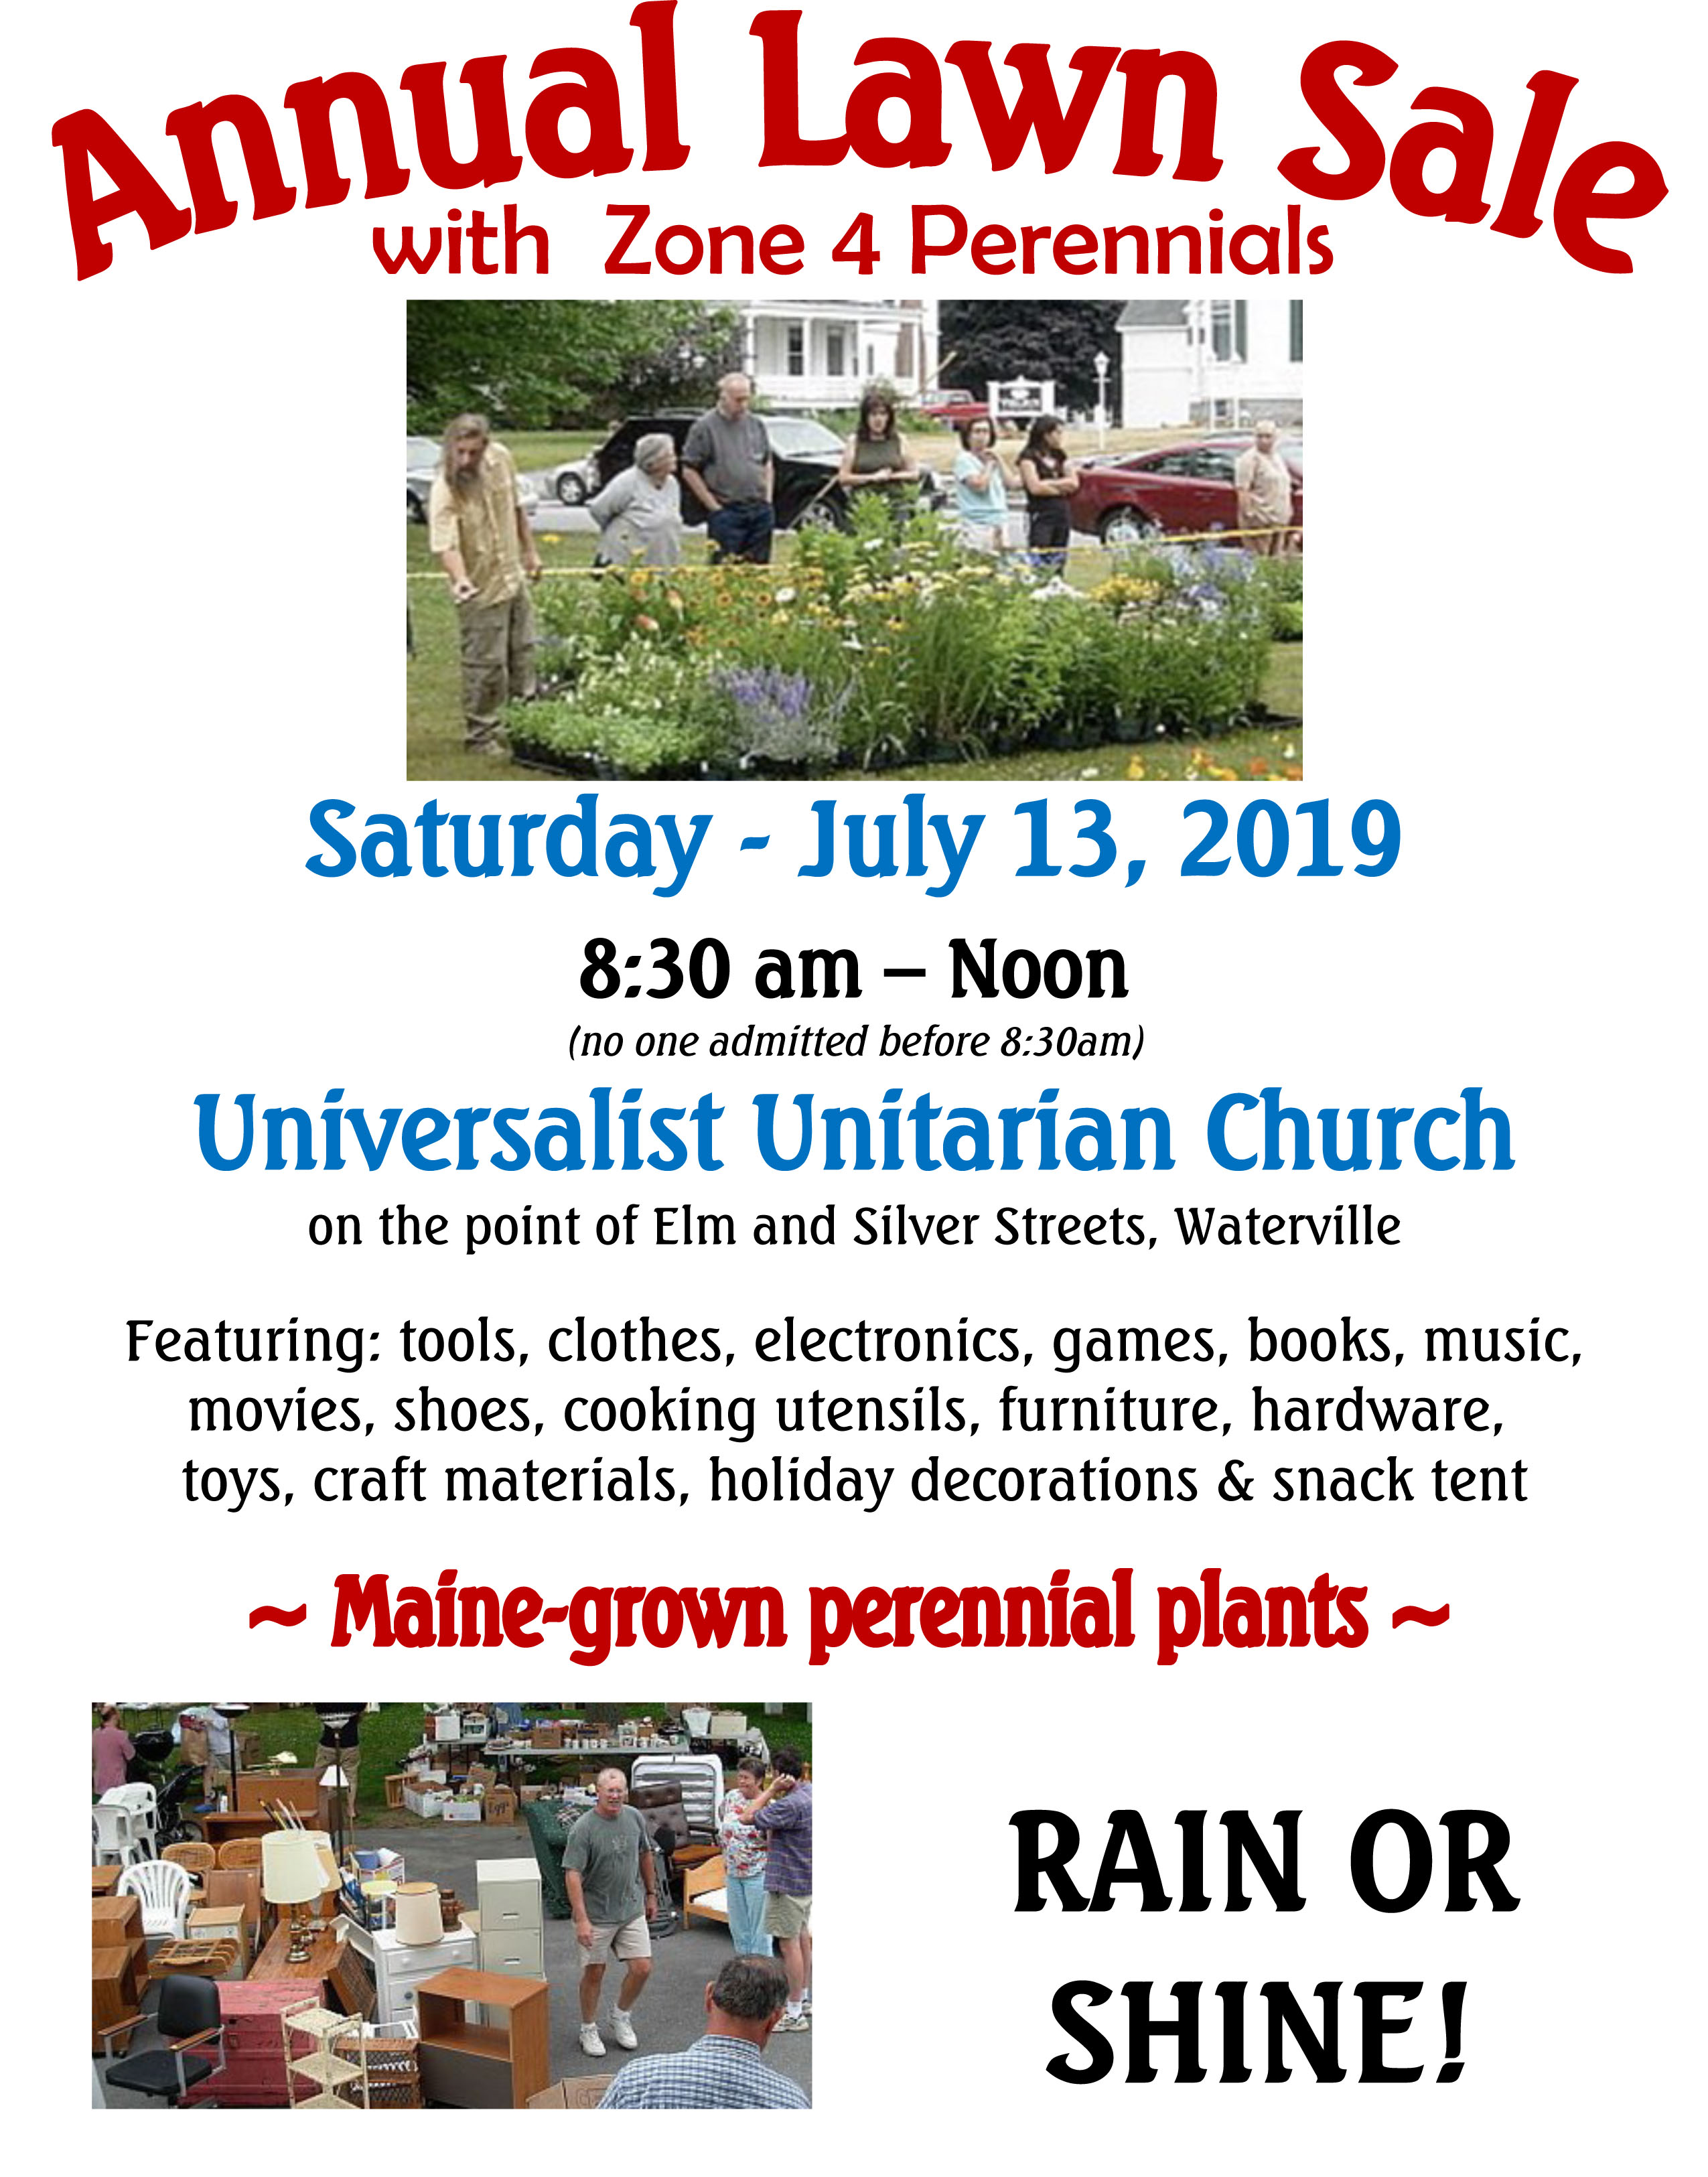 Universalist Unitarian Church is holding their Annual Lawn Sale with Zone 4 Perennials 8:30 am to noon on Saturday, July 13, 2019 (no one admitted before 8:30 am).Featured items include: Maine-grown perennial plants, tools, clothes, electronics, games, books, music, movies, shoes, cooking utensils, furniture, hardware, toys, craft materials, holiday decorations, and snack tent.